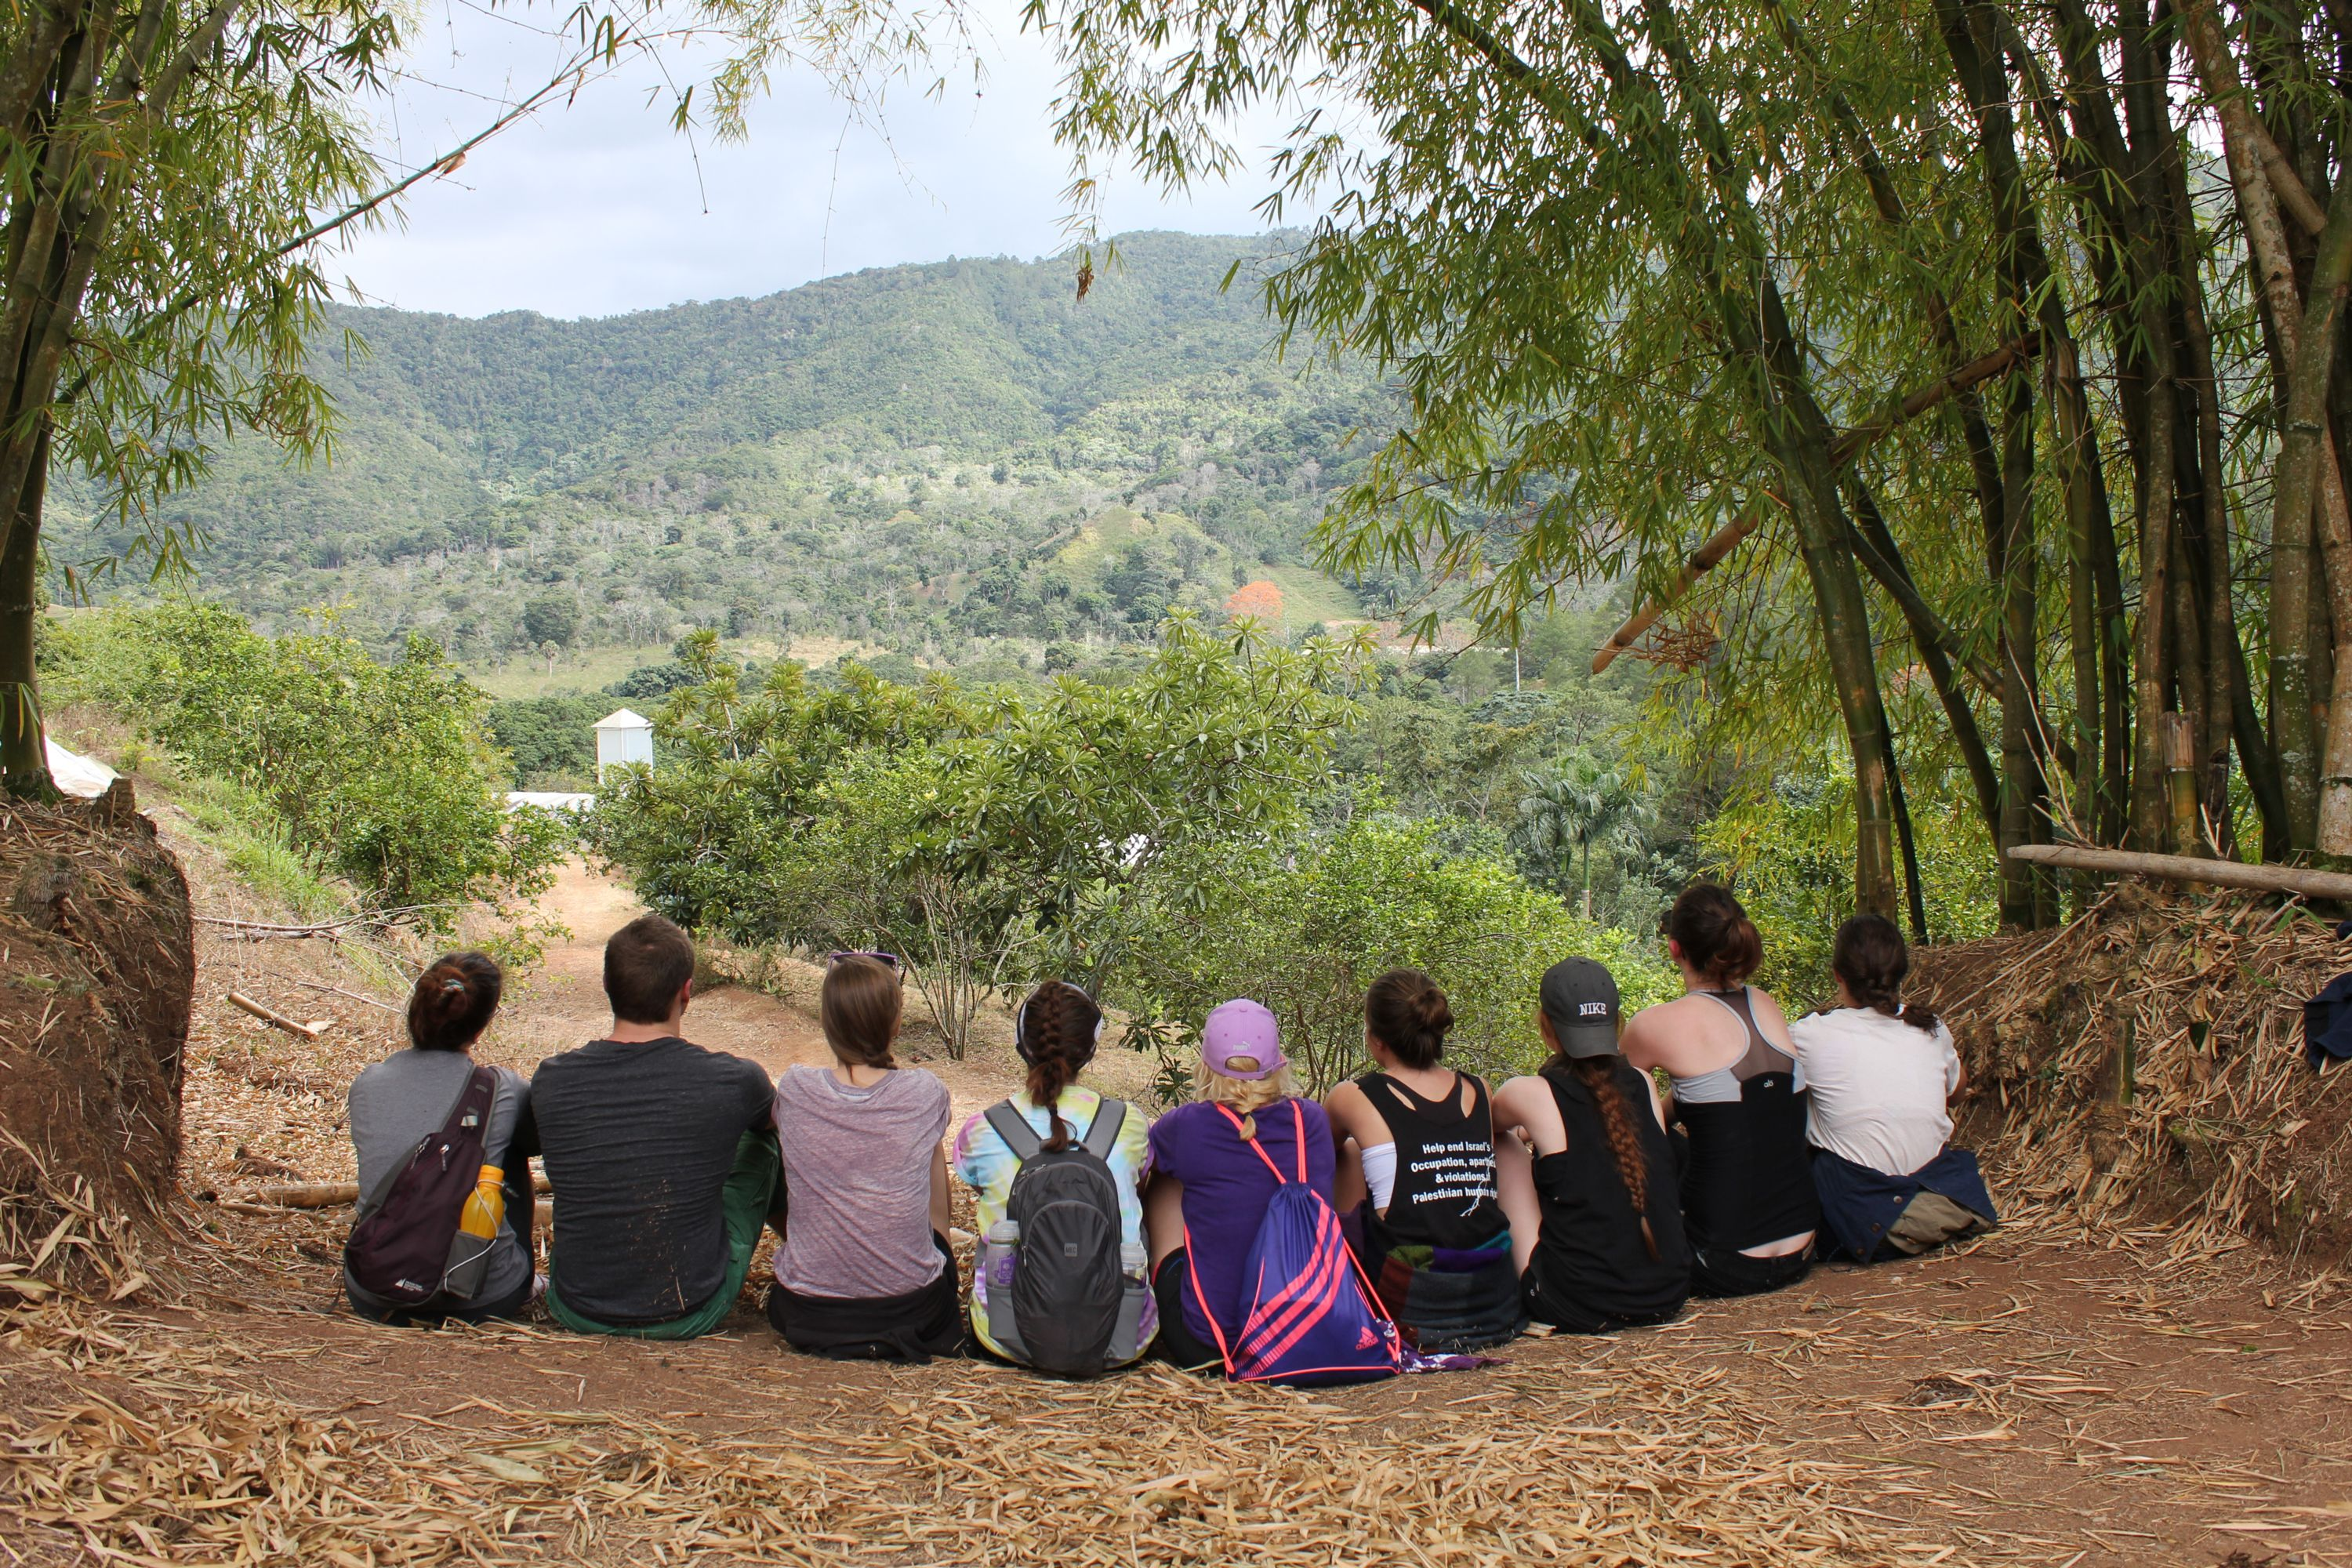 (Image: Students at an organic farm in Dominican Republic)